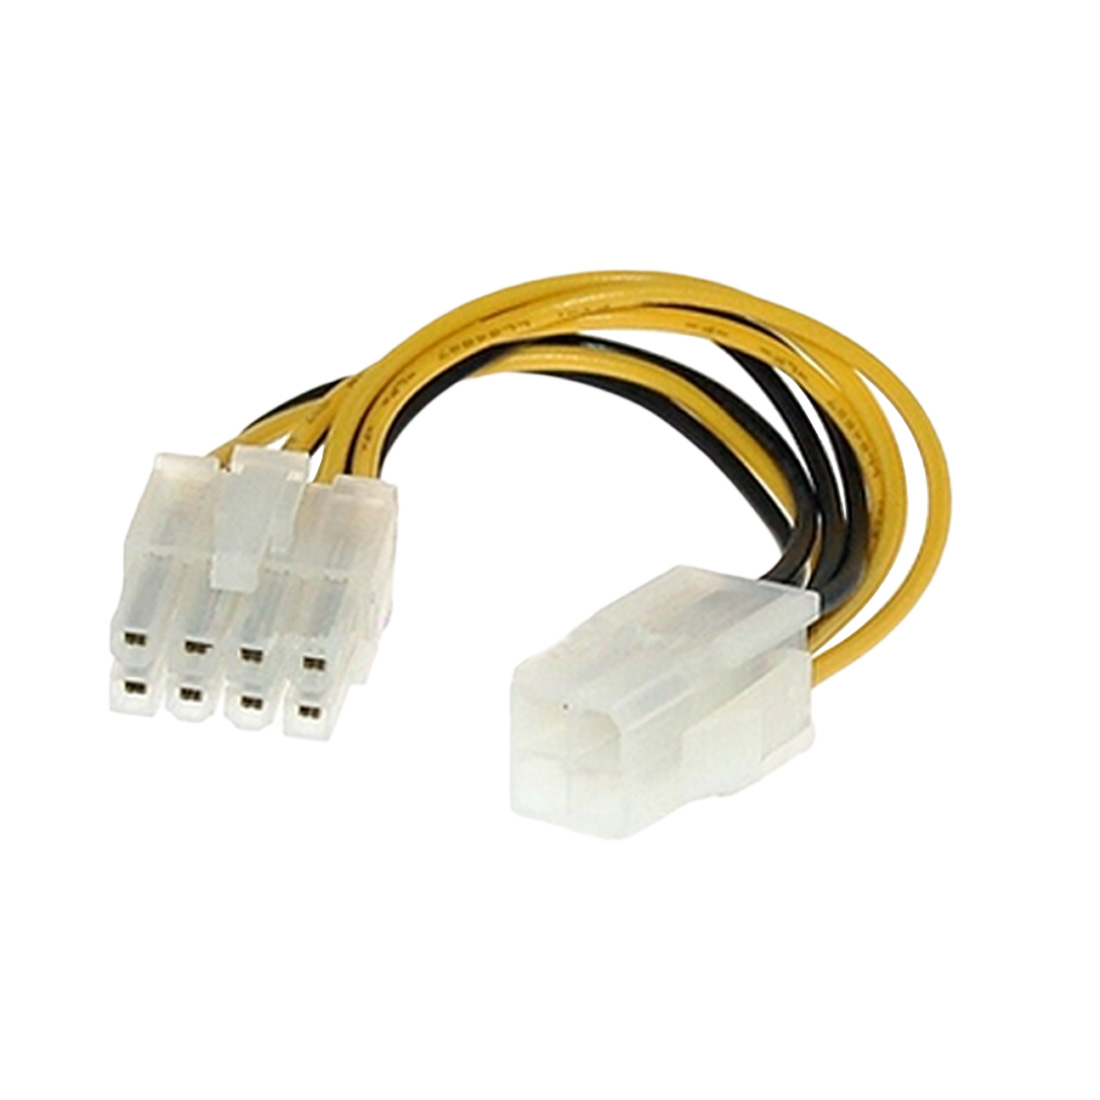 Marsnaska Hot Sale 20cm 8 inch 4 Pin Male to 8Pin Female PC CPU Power Supply Extension Cable Cord Connector Adapter